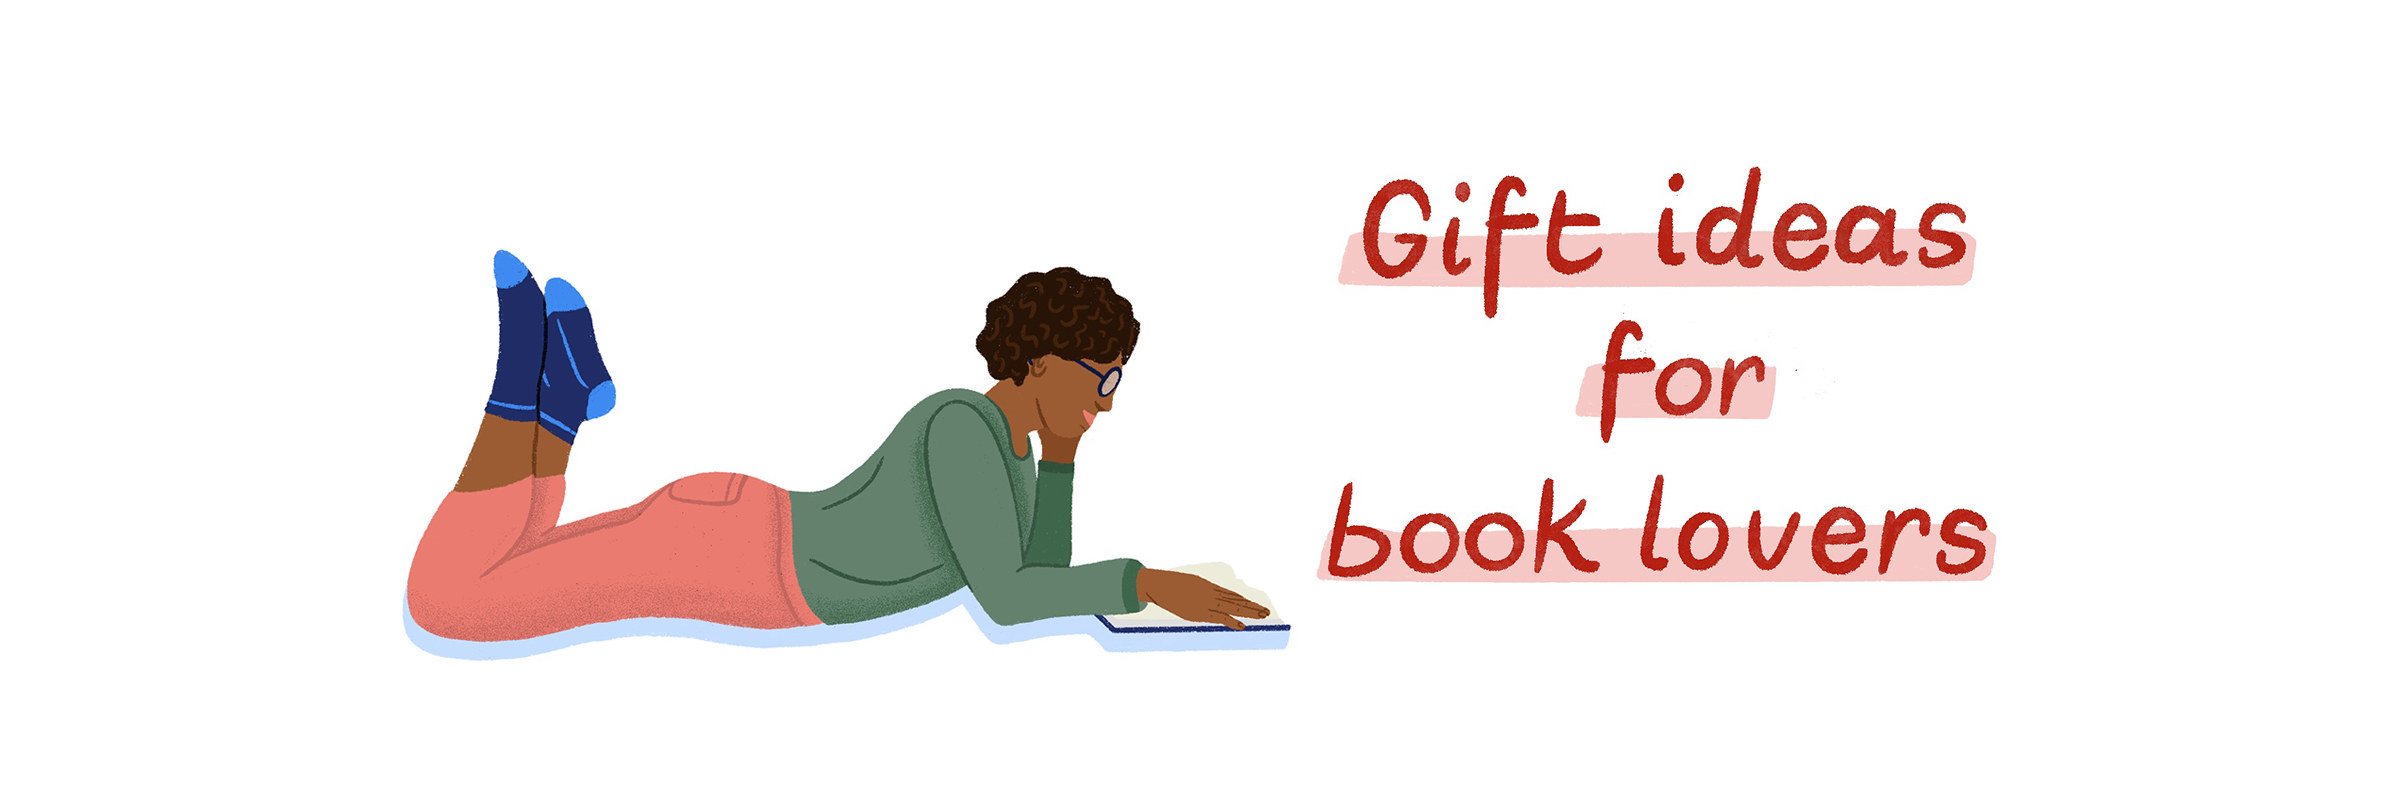 Illustration of a woman laying on her stomach reading a book